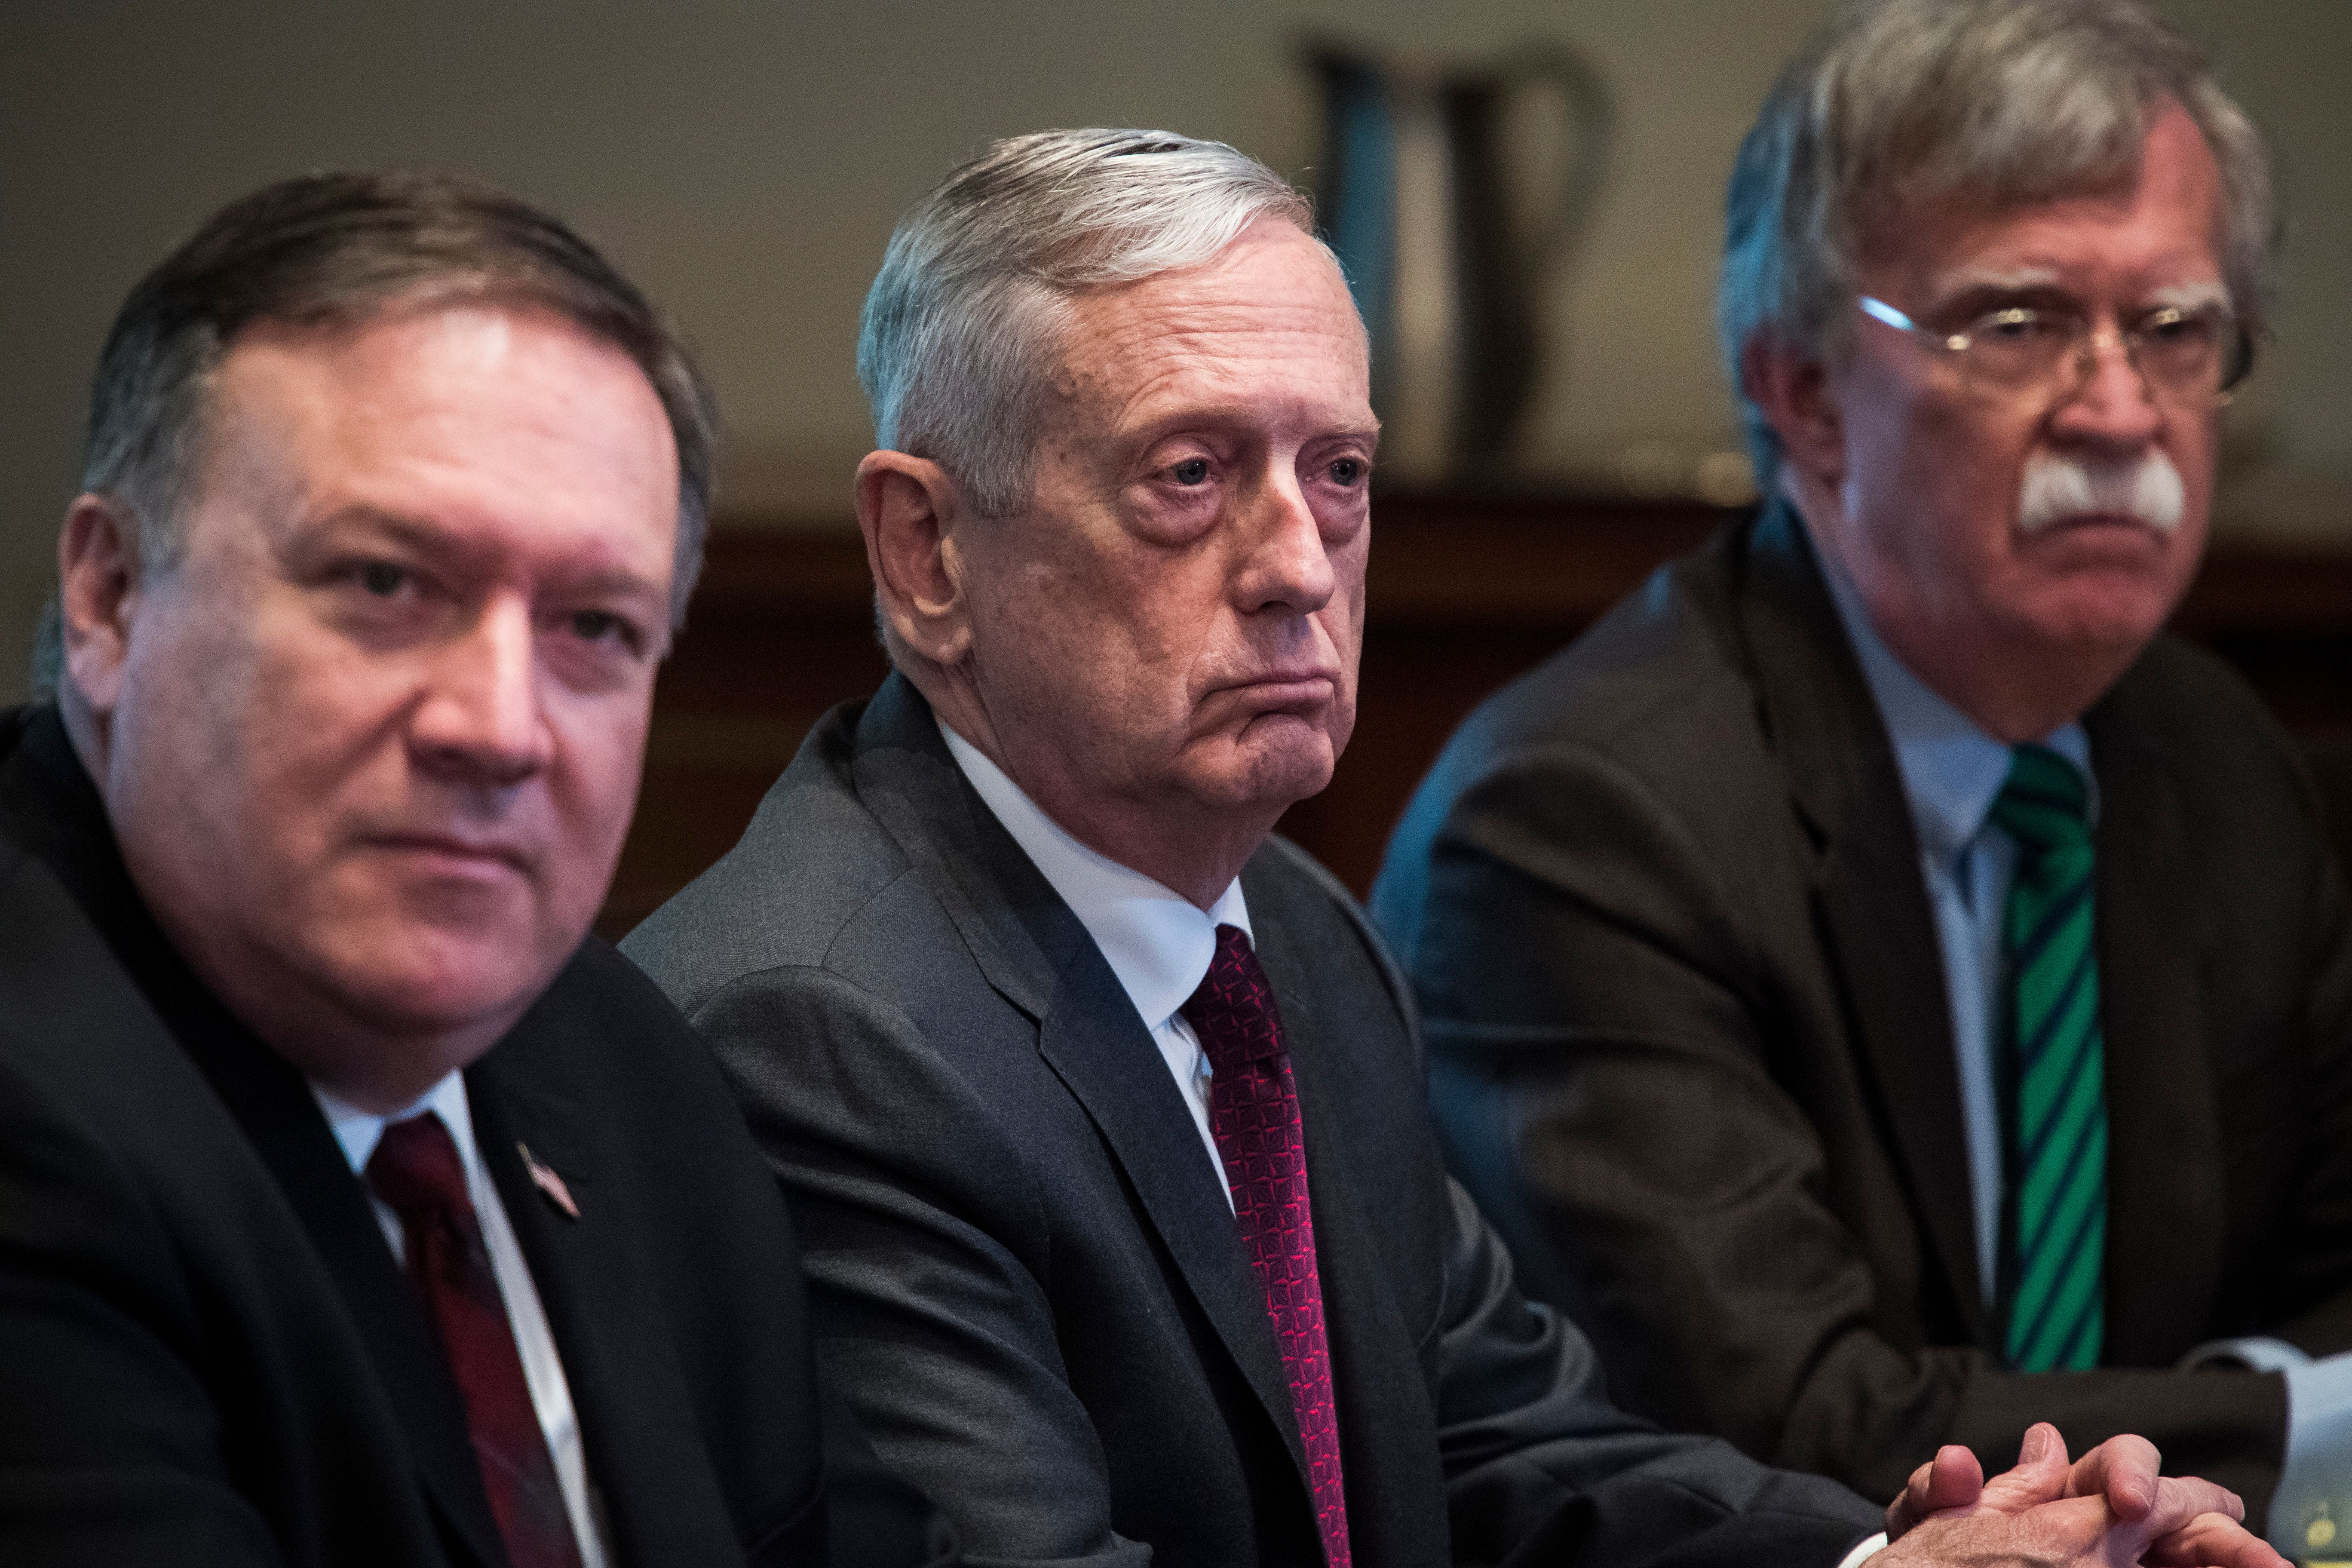 Former Secretary of Defense Jim Mattis worked to constrain Trump's whims, while Secretary of State Mike Pompeo catered